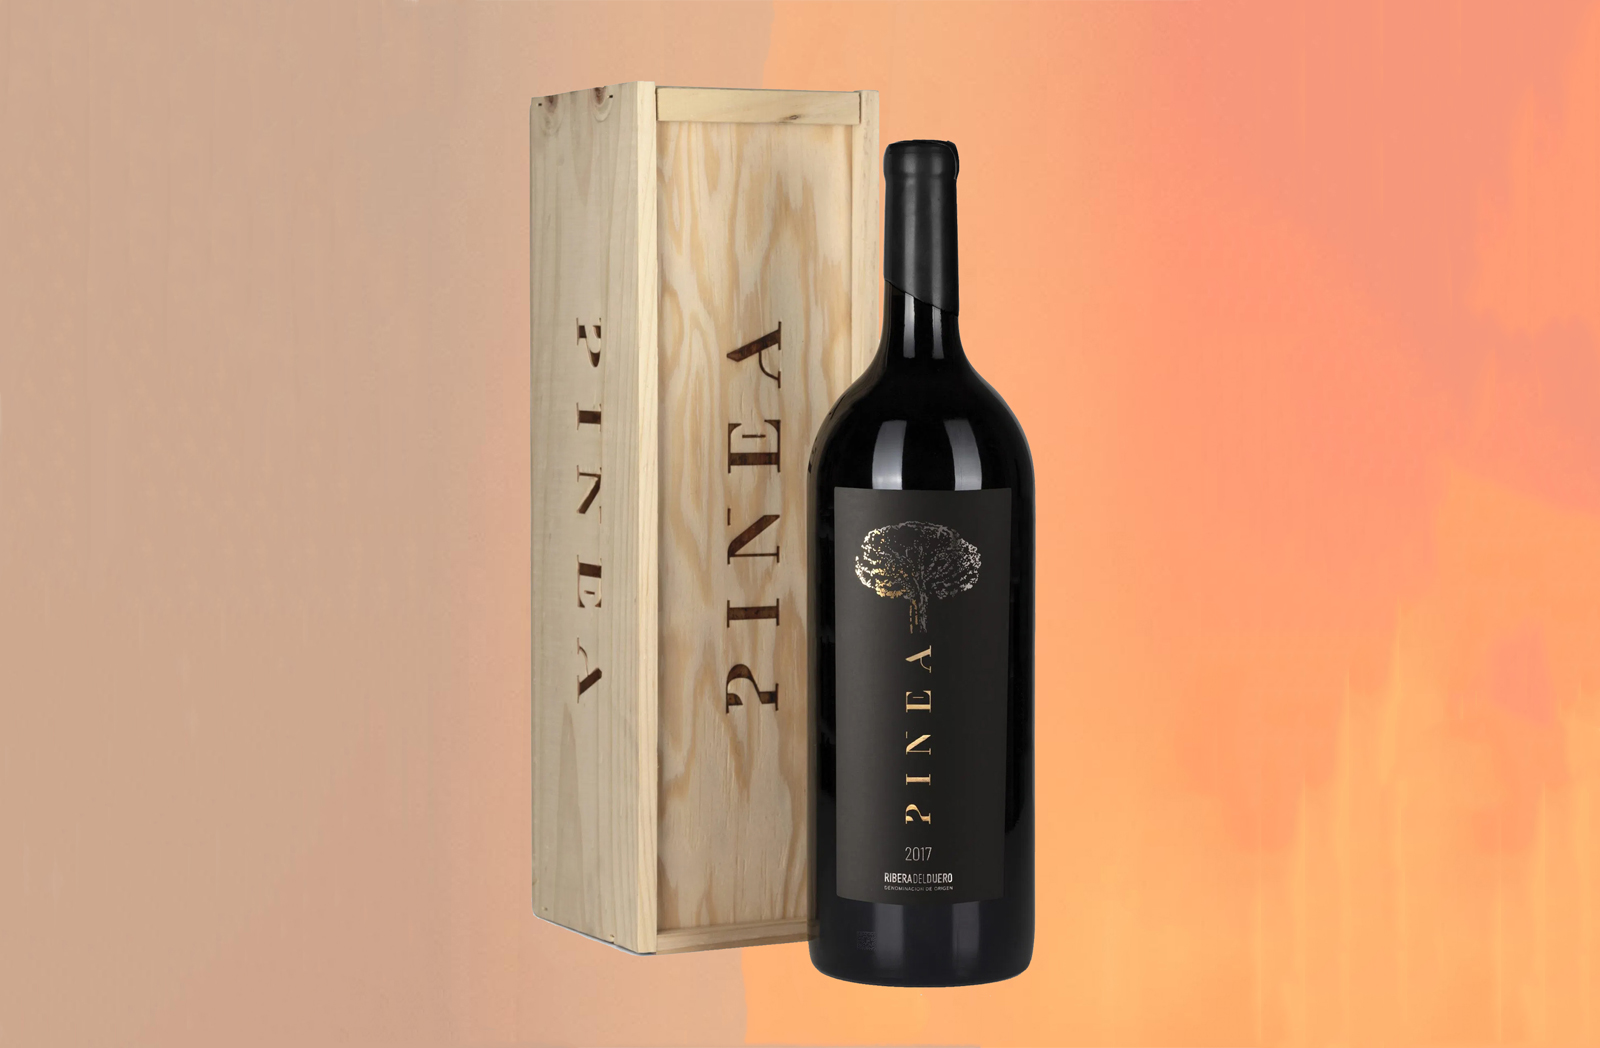 2017 Vintage Of Pinea Tempranillo wine bottle and crate